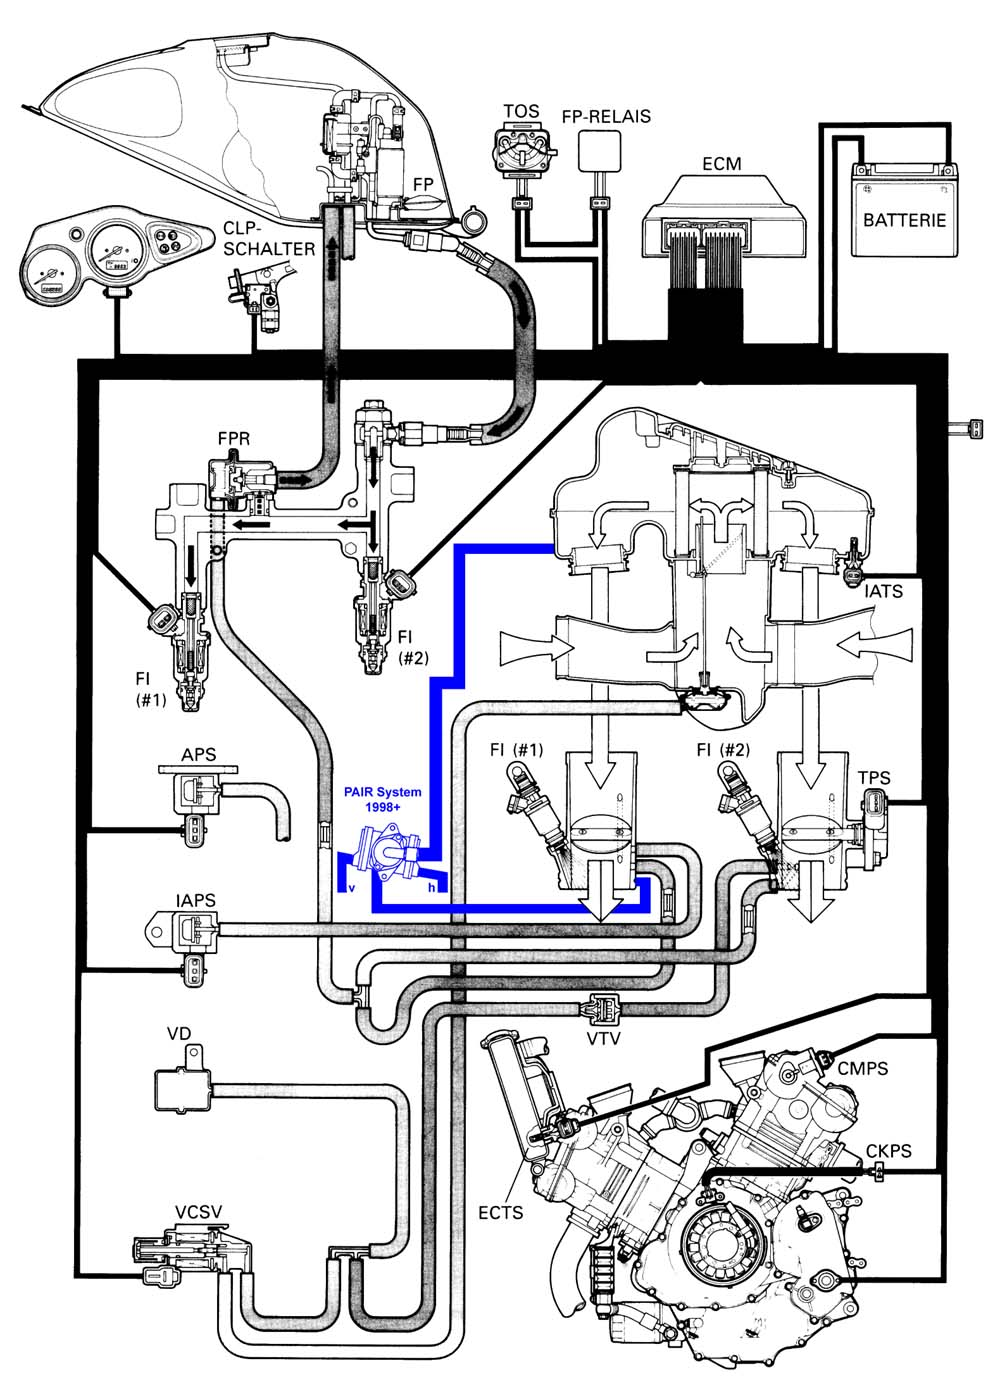 2009 Suzuki Sx4 Fuse Box Location. Suzuki. Wiring Diagram